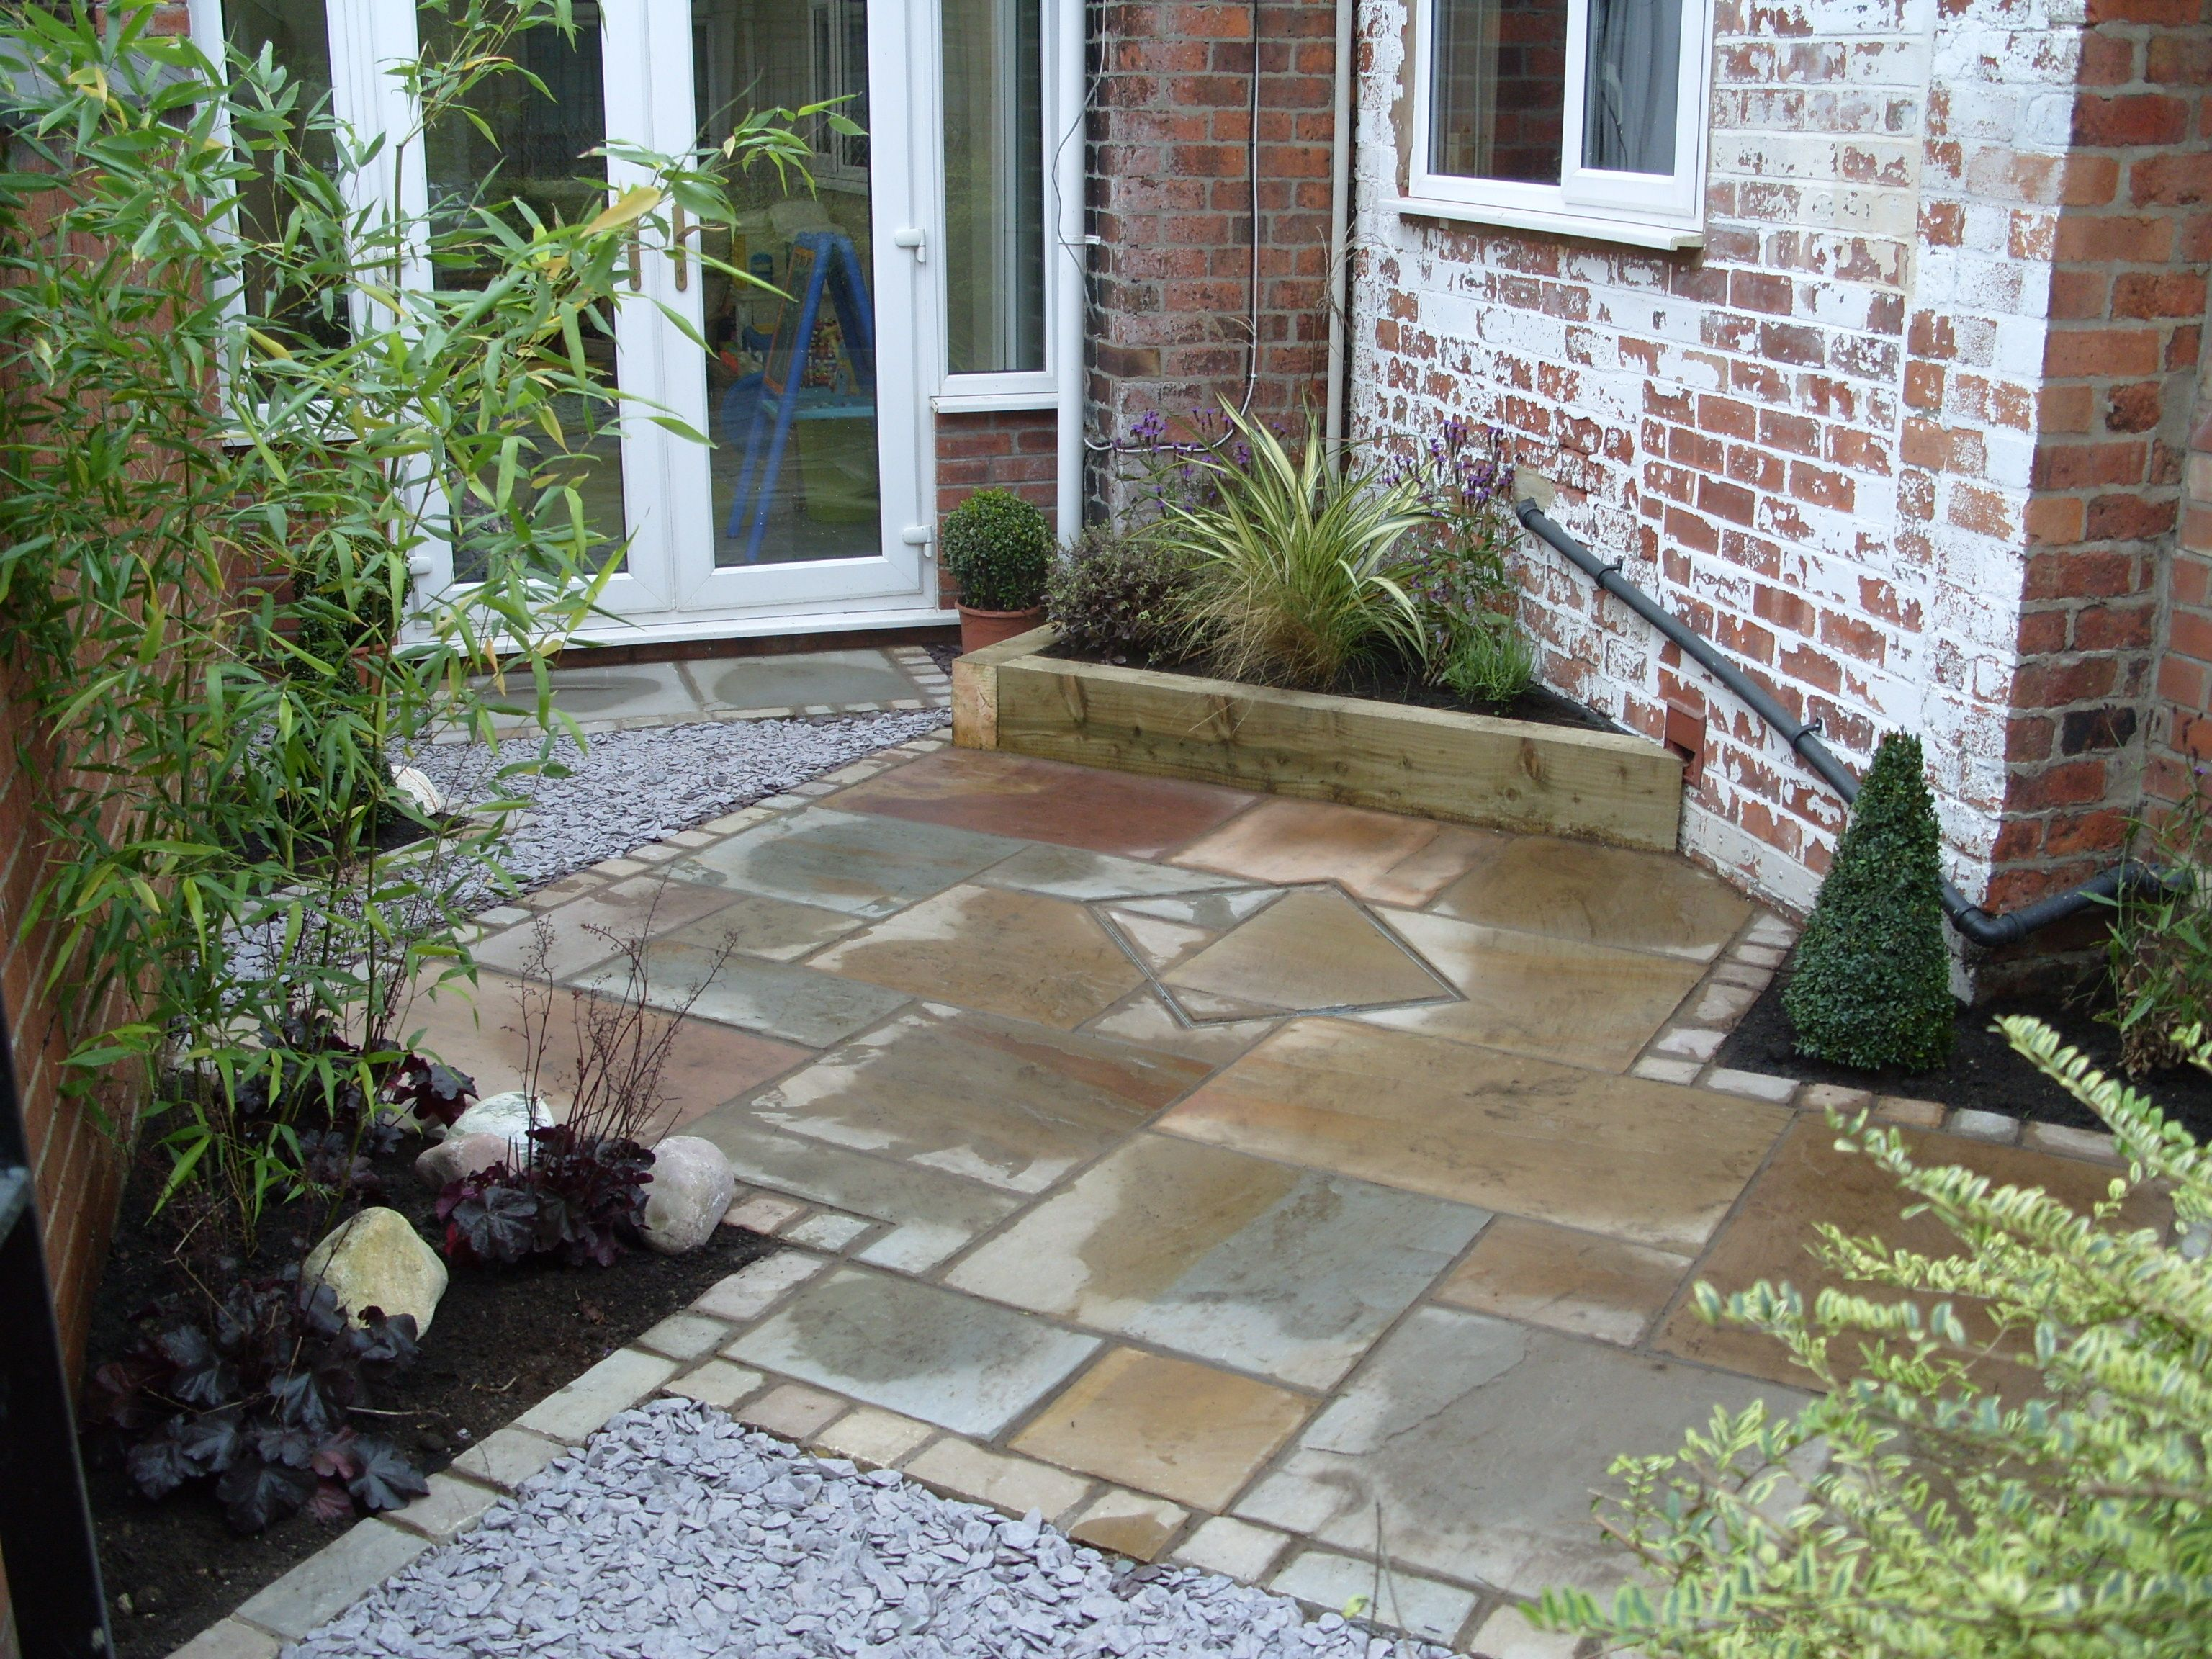 Courtyard garden ideas courtyards angie barker trading as for Small garden design pictures